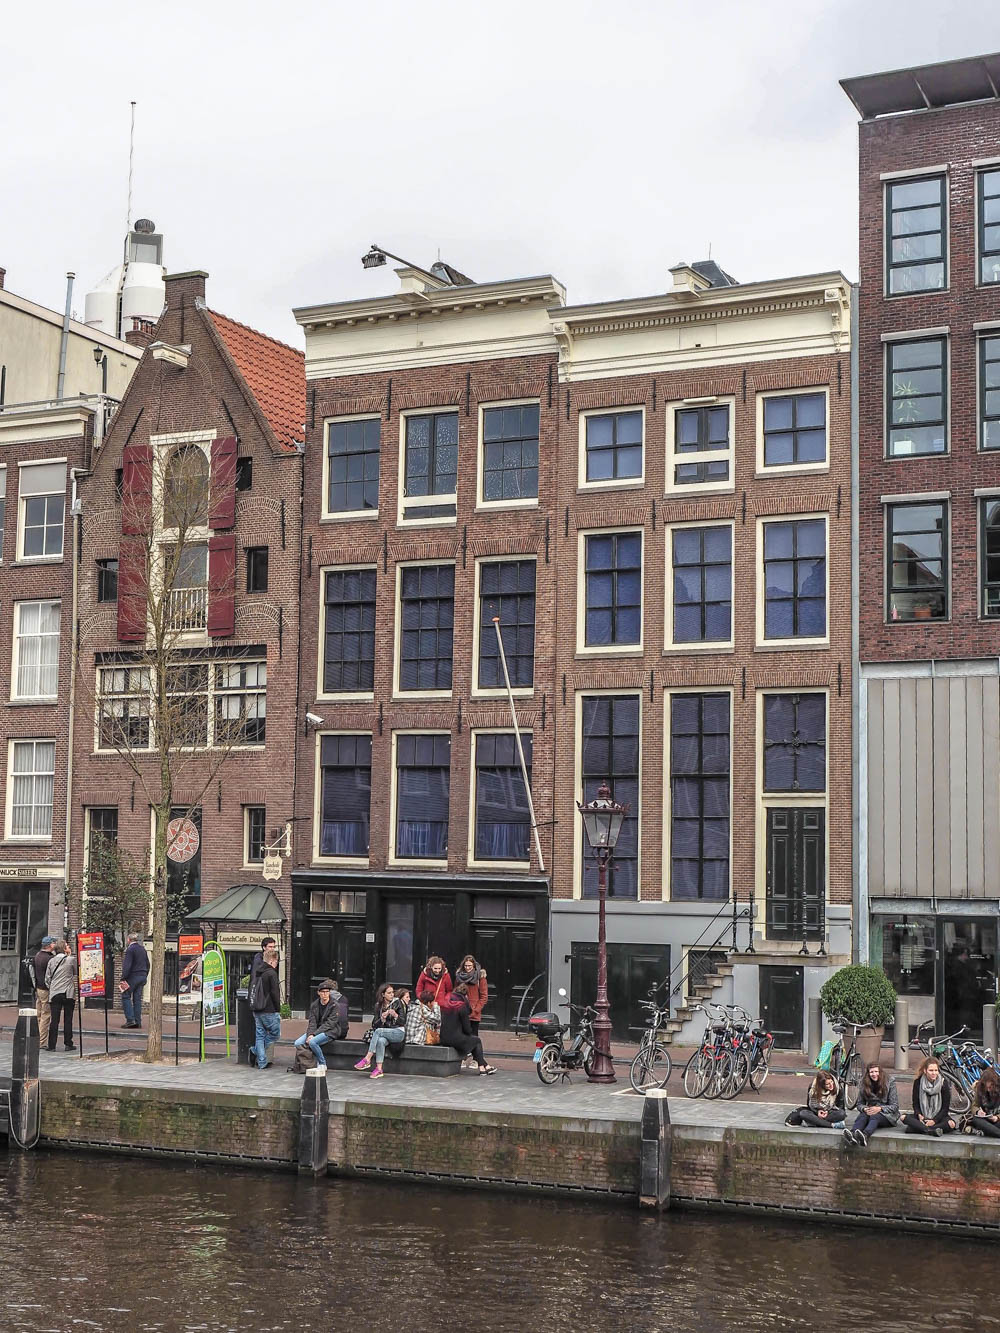 Exterior of the Anne Frank House | Tips for visiting the Anne Frank House museum in Amsterdam